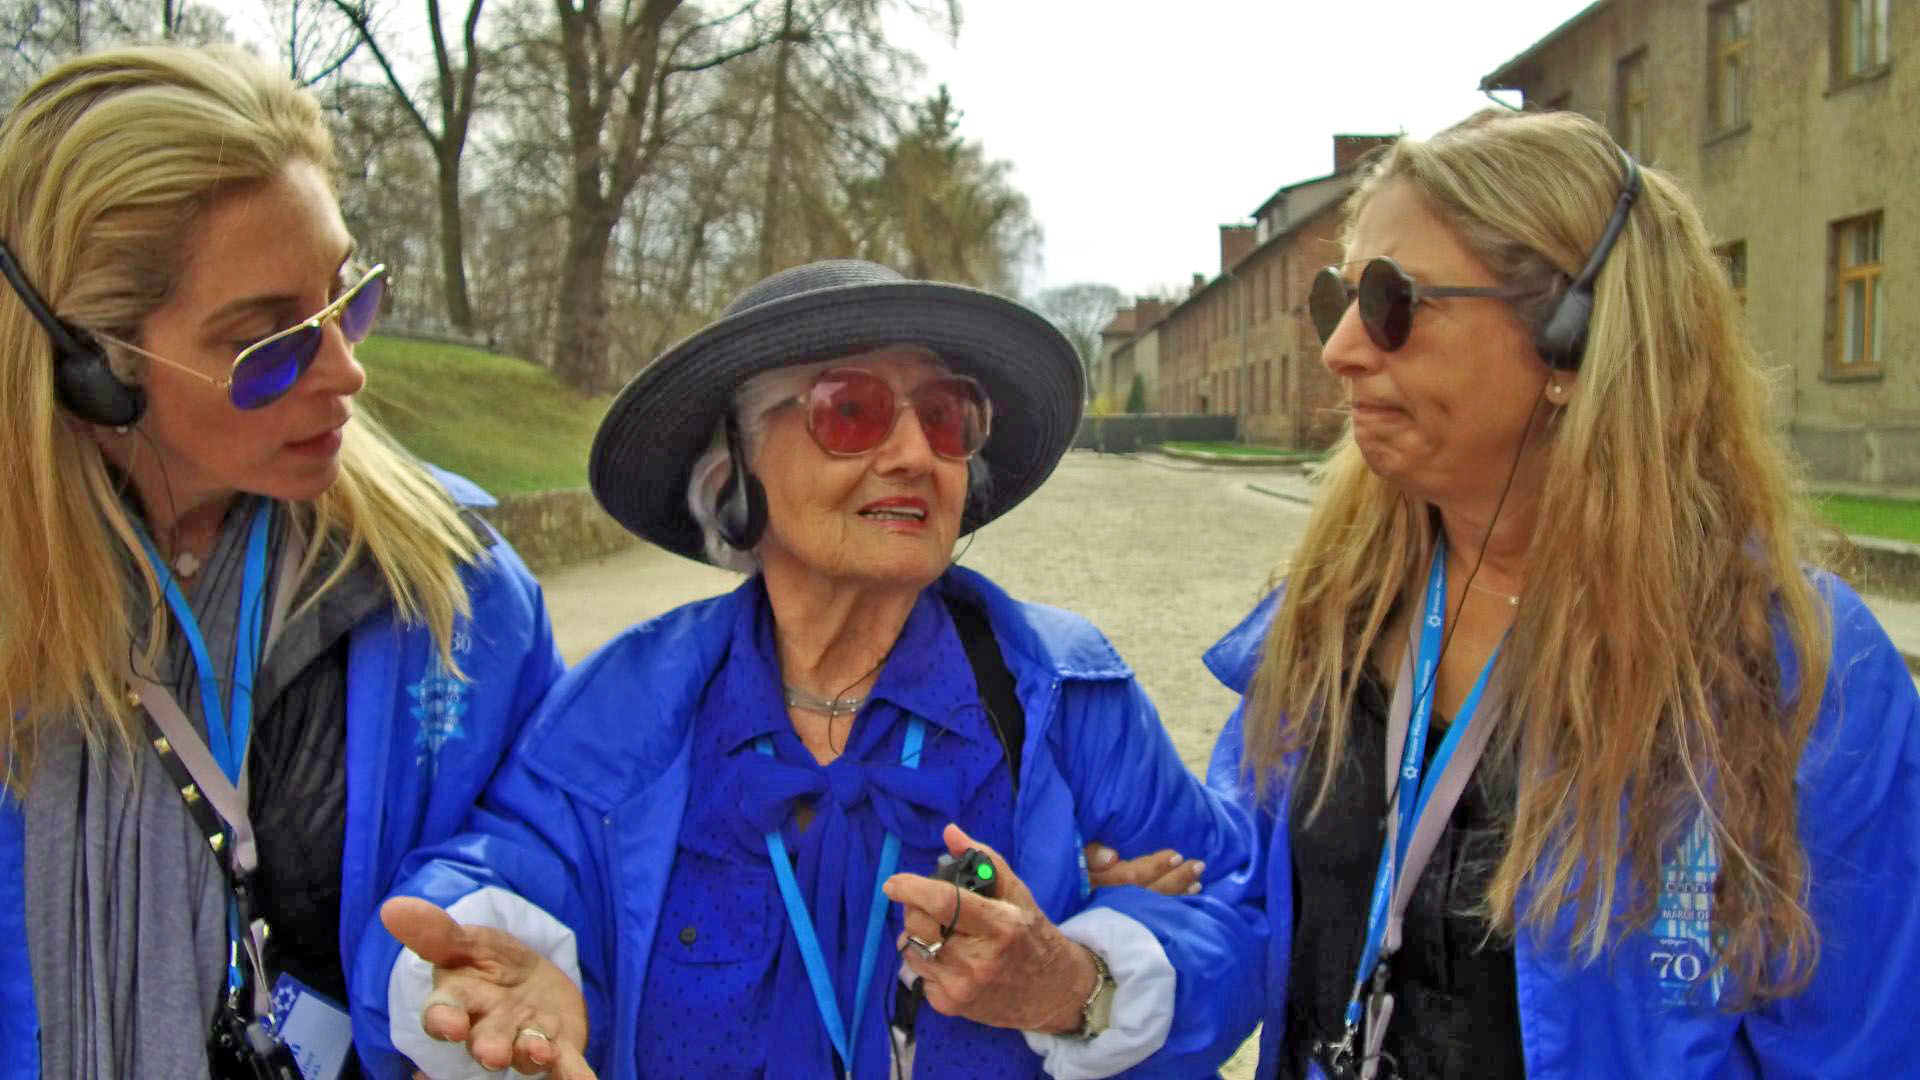 Magda at Auschwitz on April 11, 2018 - the day before the March of the Living took place there.